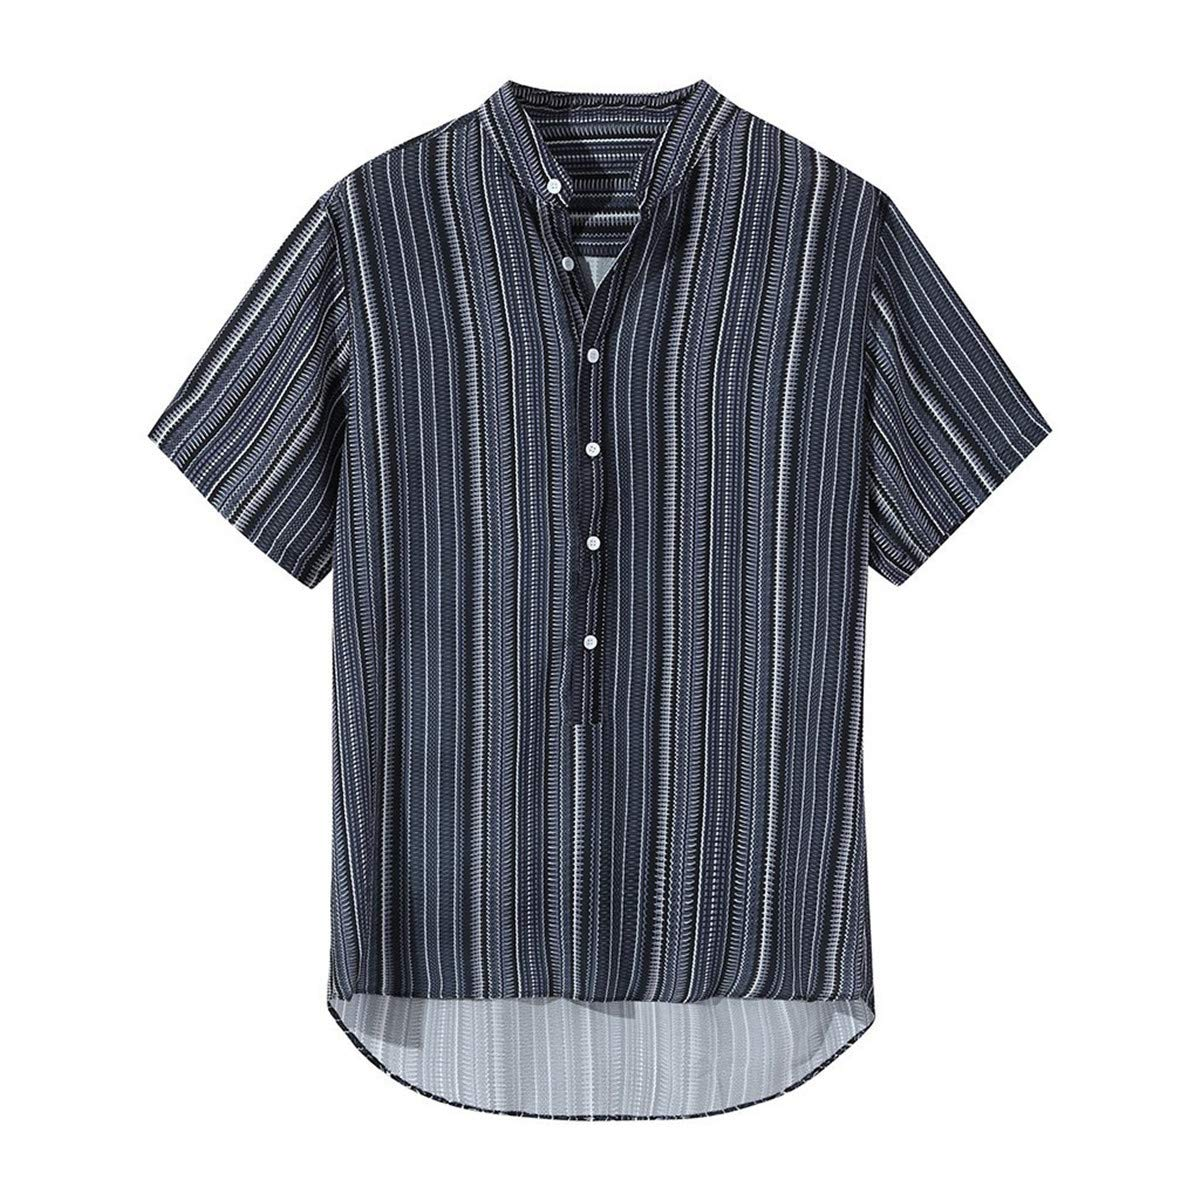 Thenxin Mens Button Down Shirt Short Sleeve Stripes Pullover Tops Regular-Fit Tee